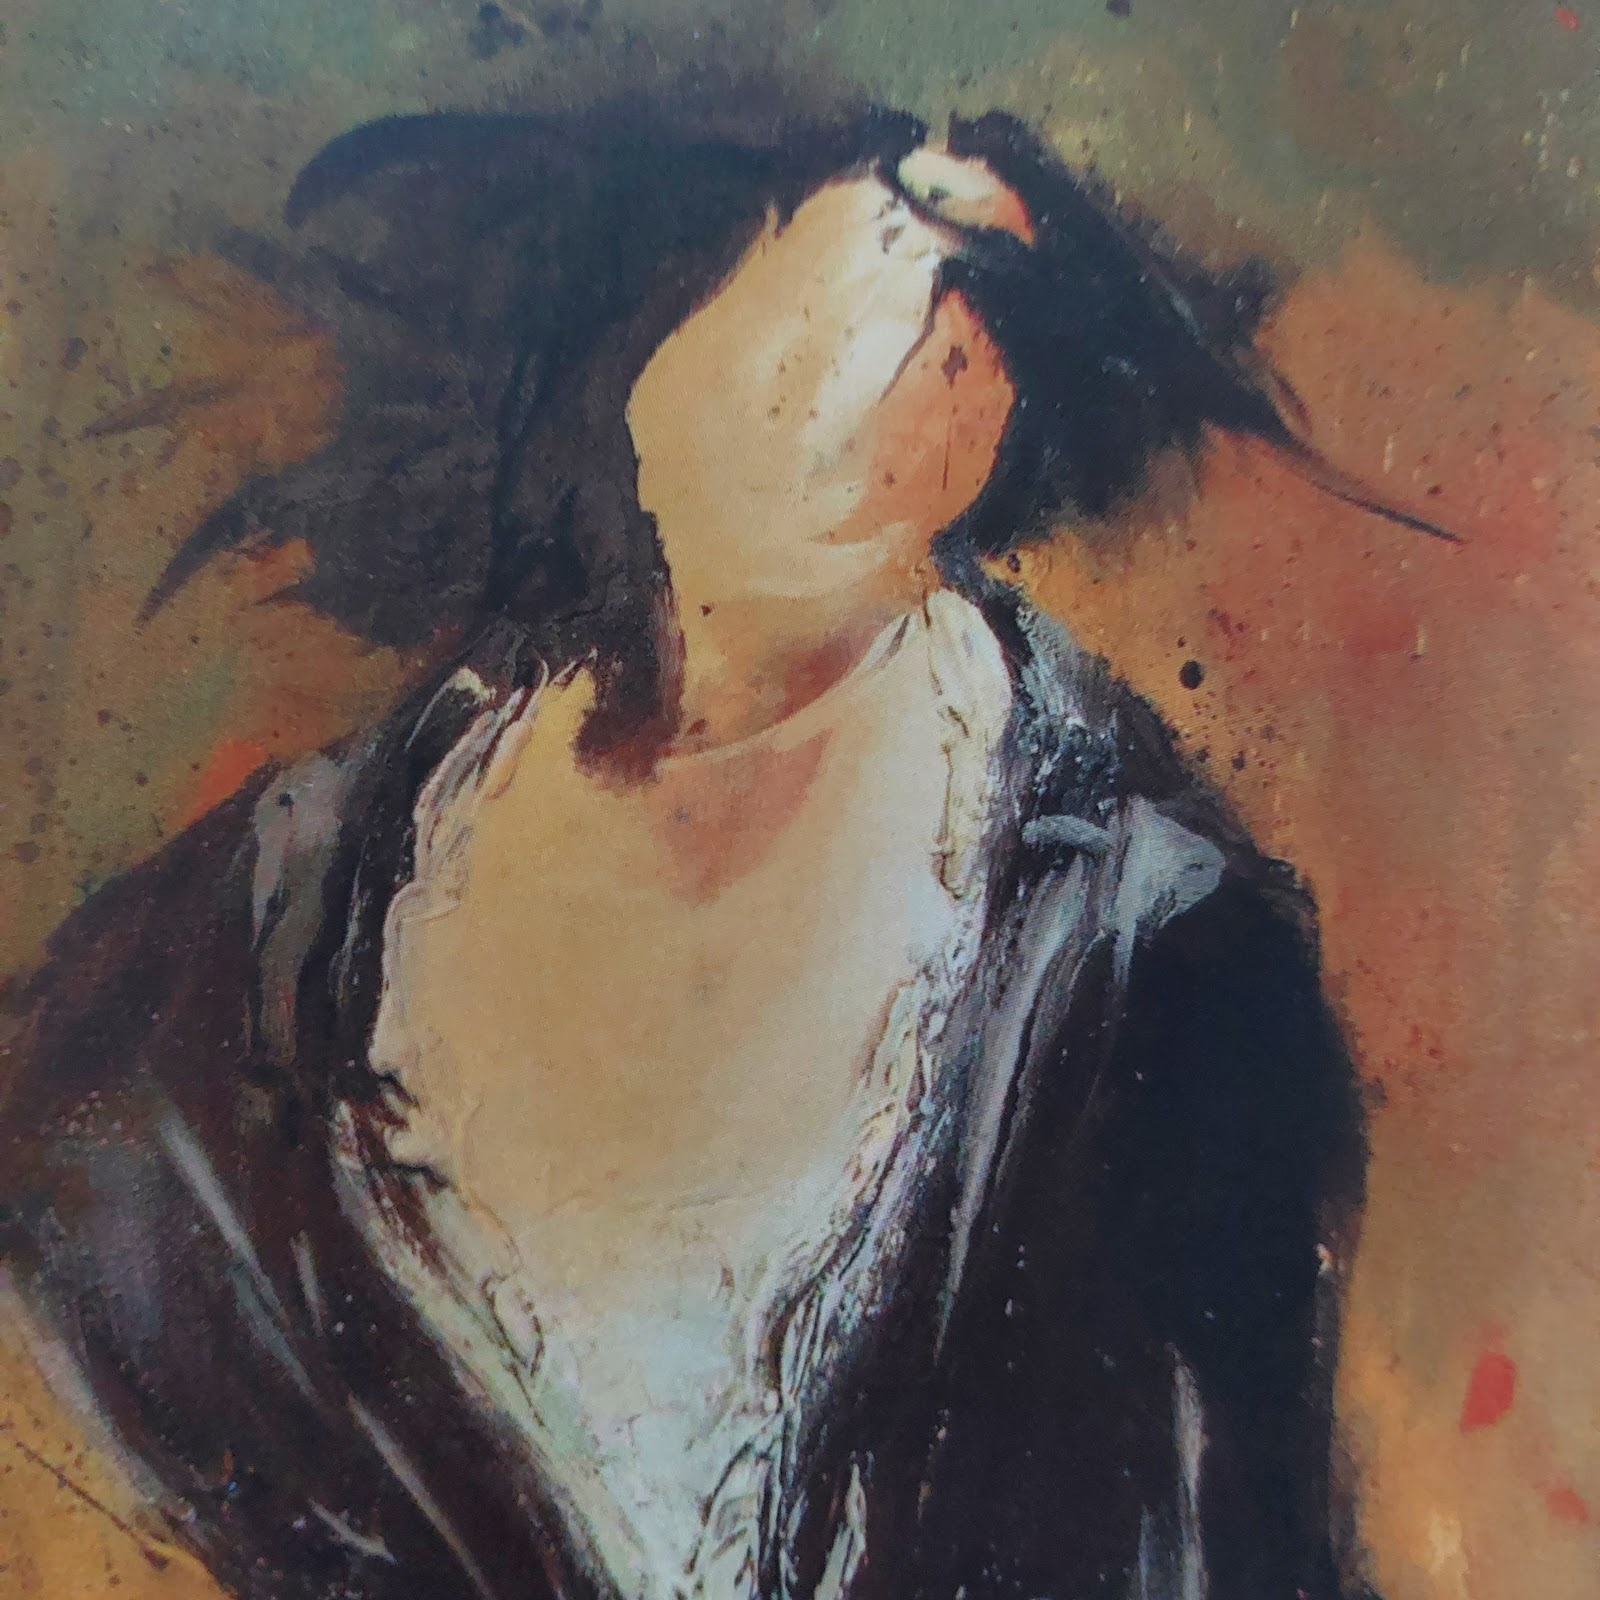 Artwork by Tom Climent features a painting of a faceless woman in a black dress on a paint spattered background